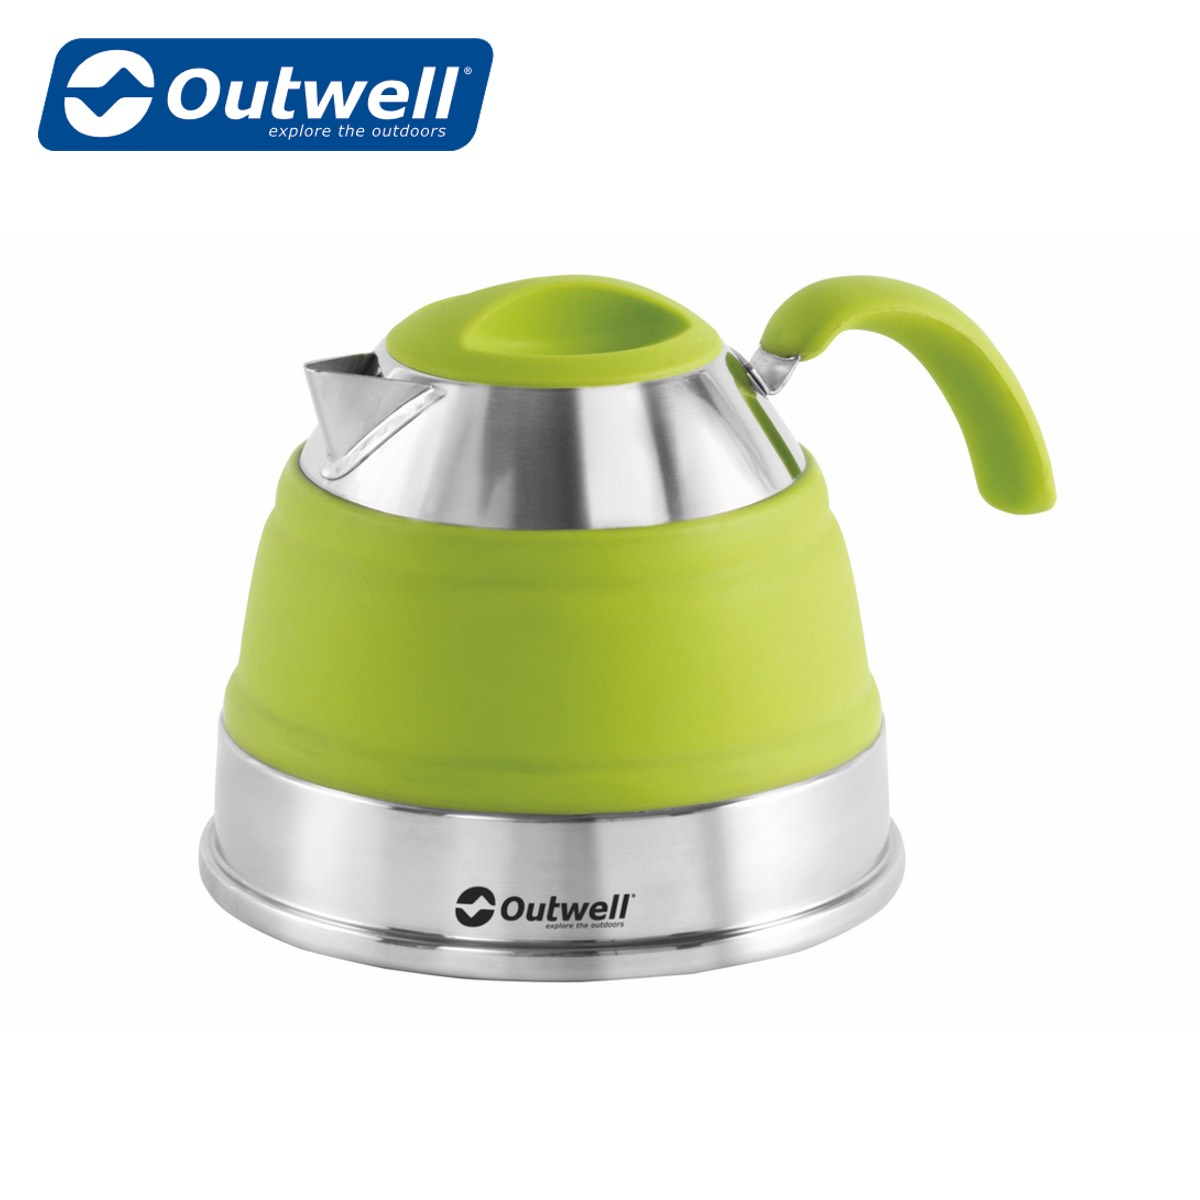 Outwell Collaps Kettle